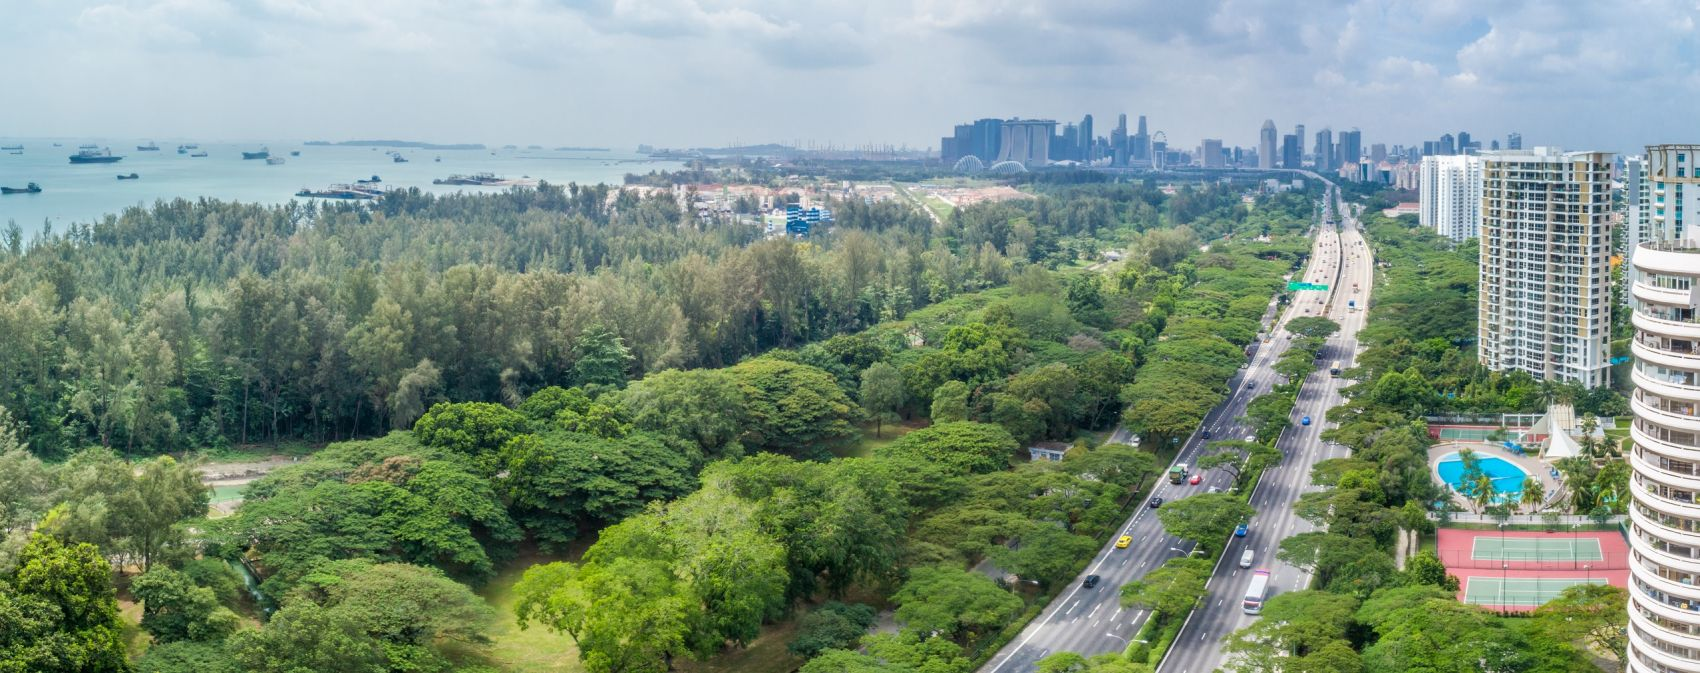 Meyer Mansion Singapore . Sea and City Views